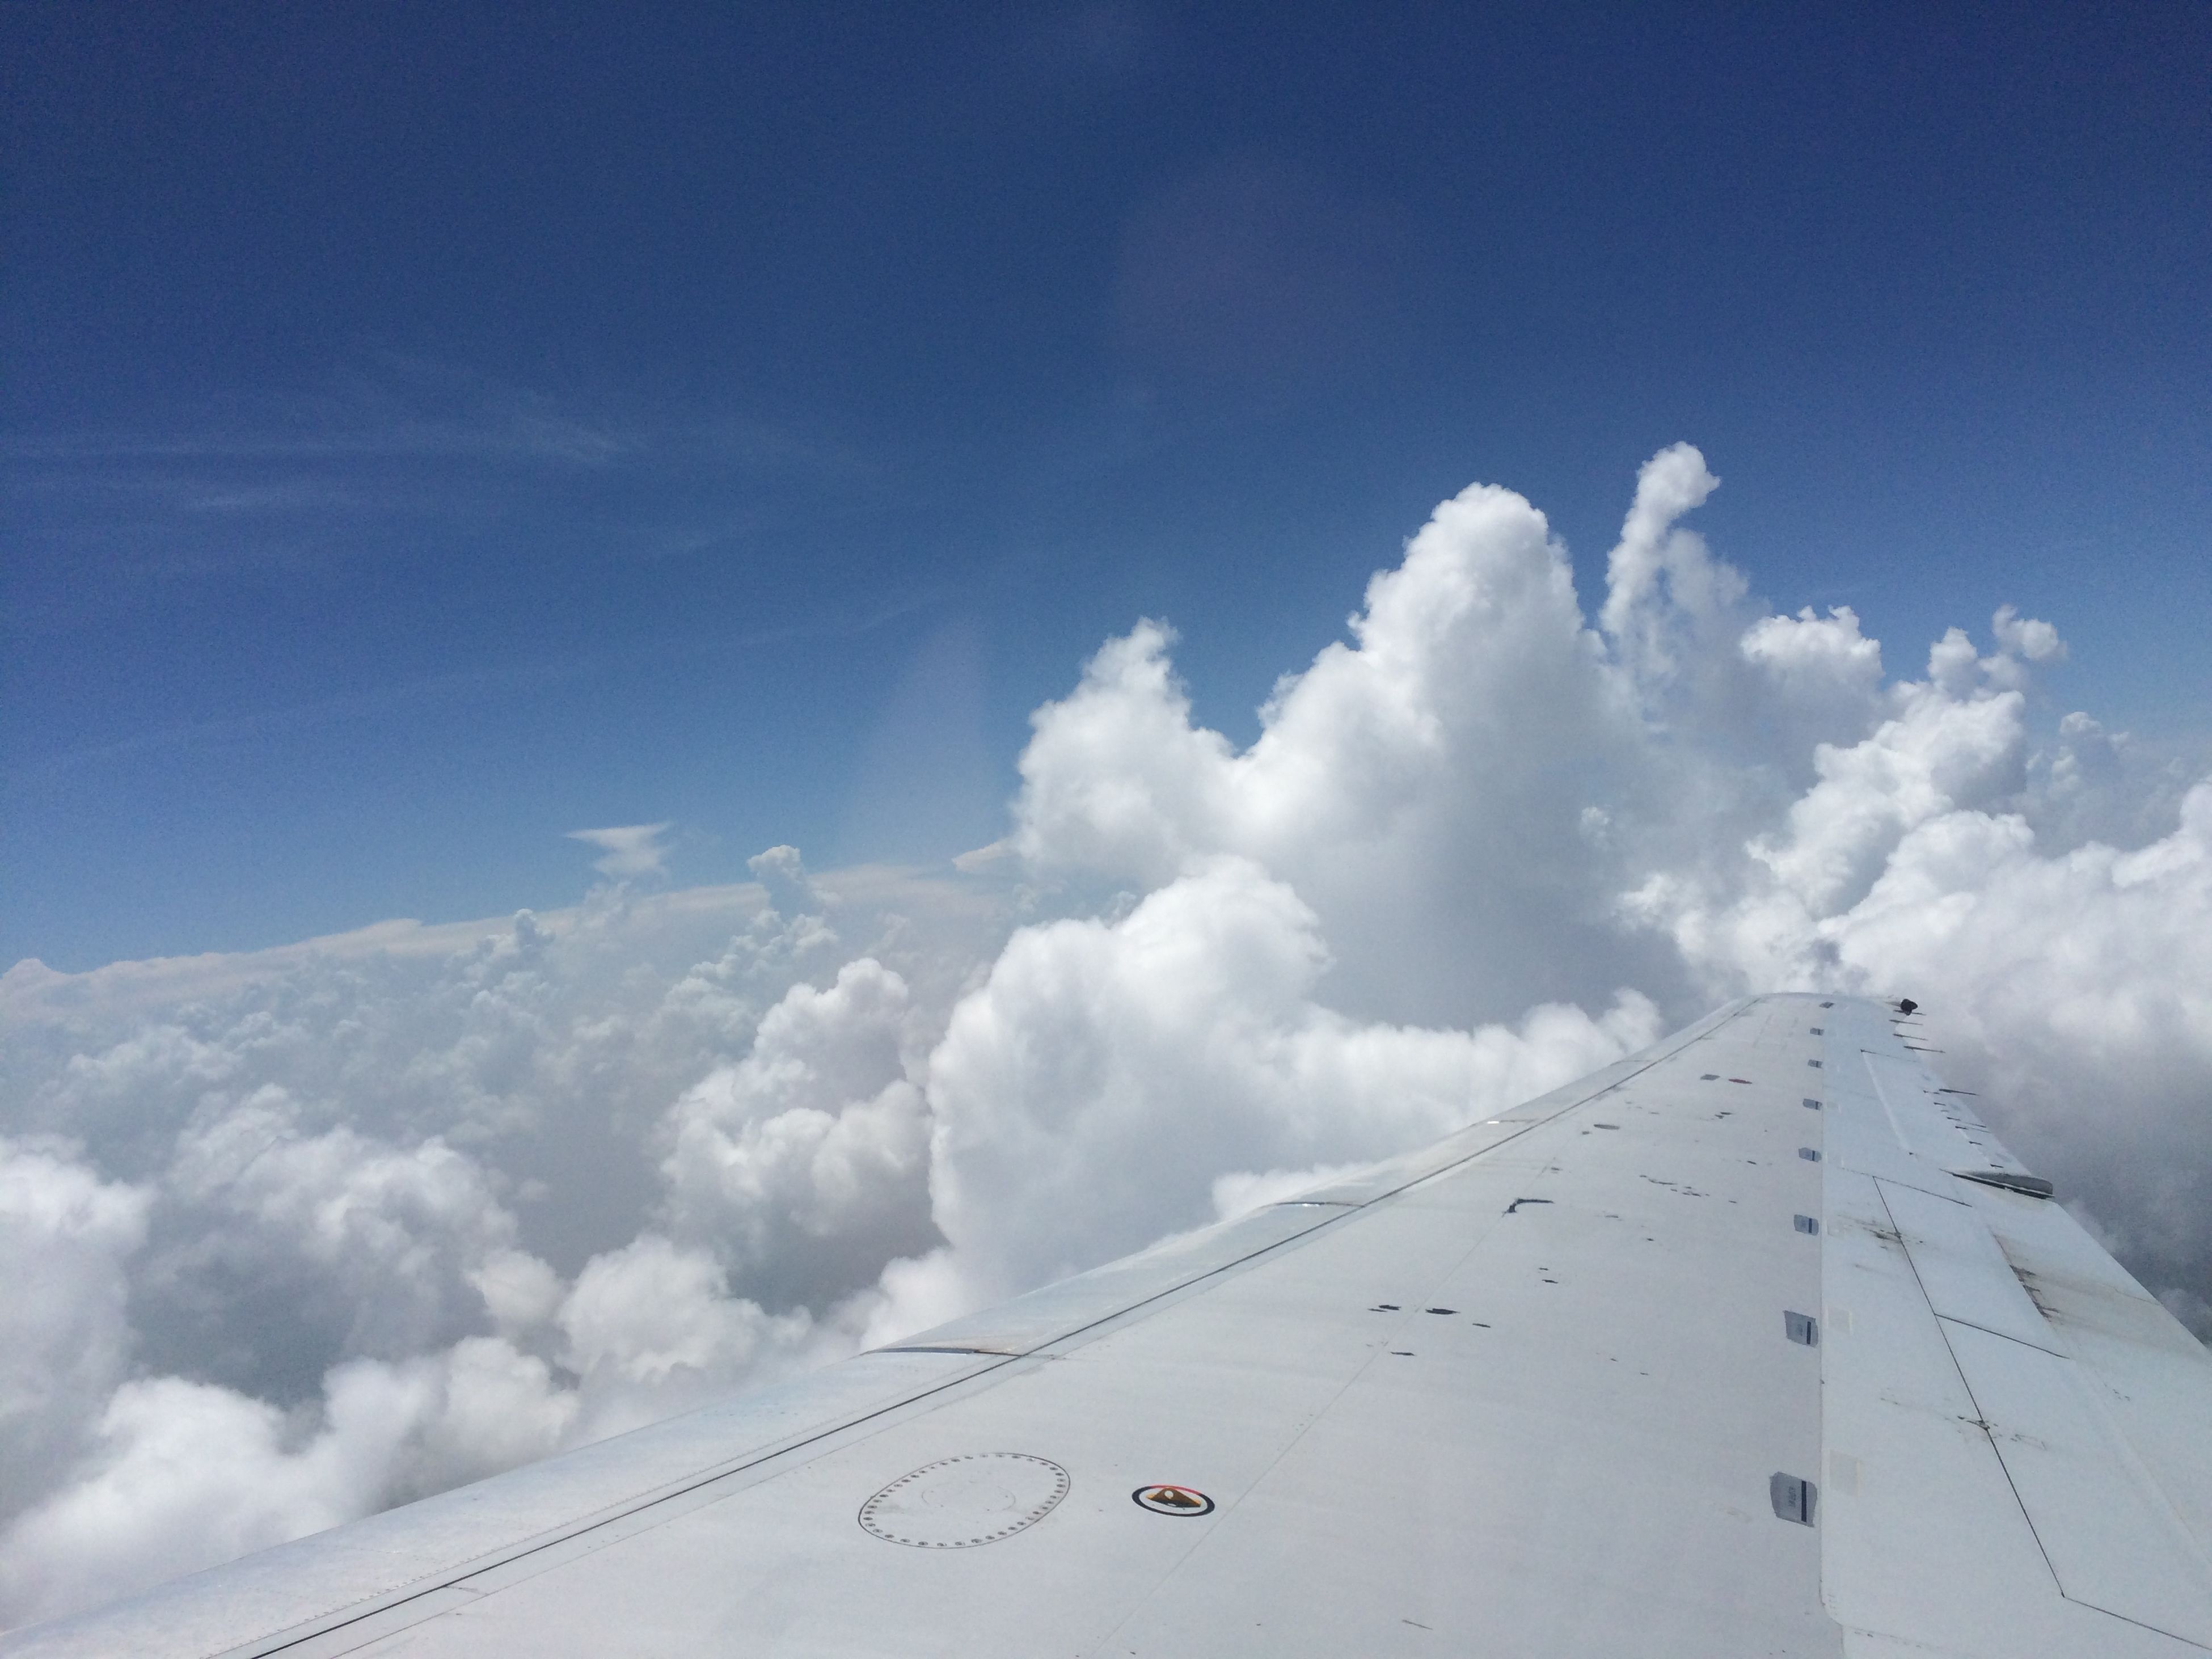 sky, low angle view, cloud - sky, blue, transportation, cloud, white color, cloudy, day, nature, outdoors, white, no people, beauty in nature, airplane, scenics, tranquility, flying, mode of transport, copy space